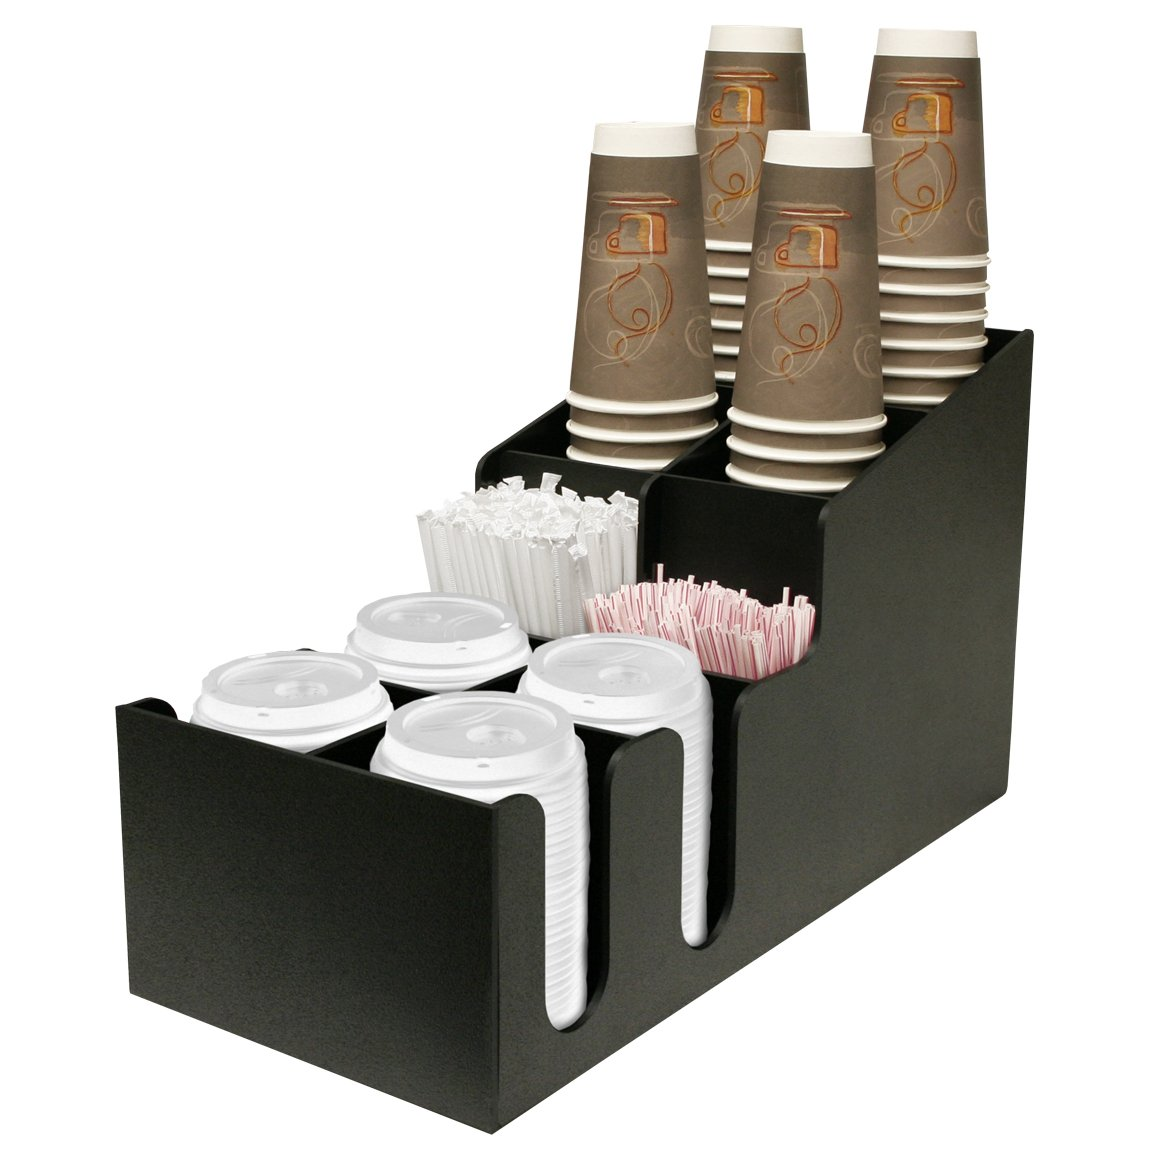 Coffee Cups, Lids and Stirrers Holder. Holds 24 oz. Cups & Lids or Smaller. Professional way to Present your Coffee.Proudly Made in the USA! by PPM.